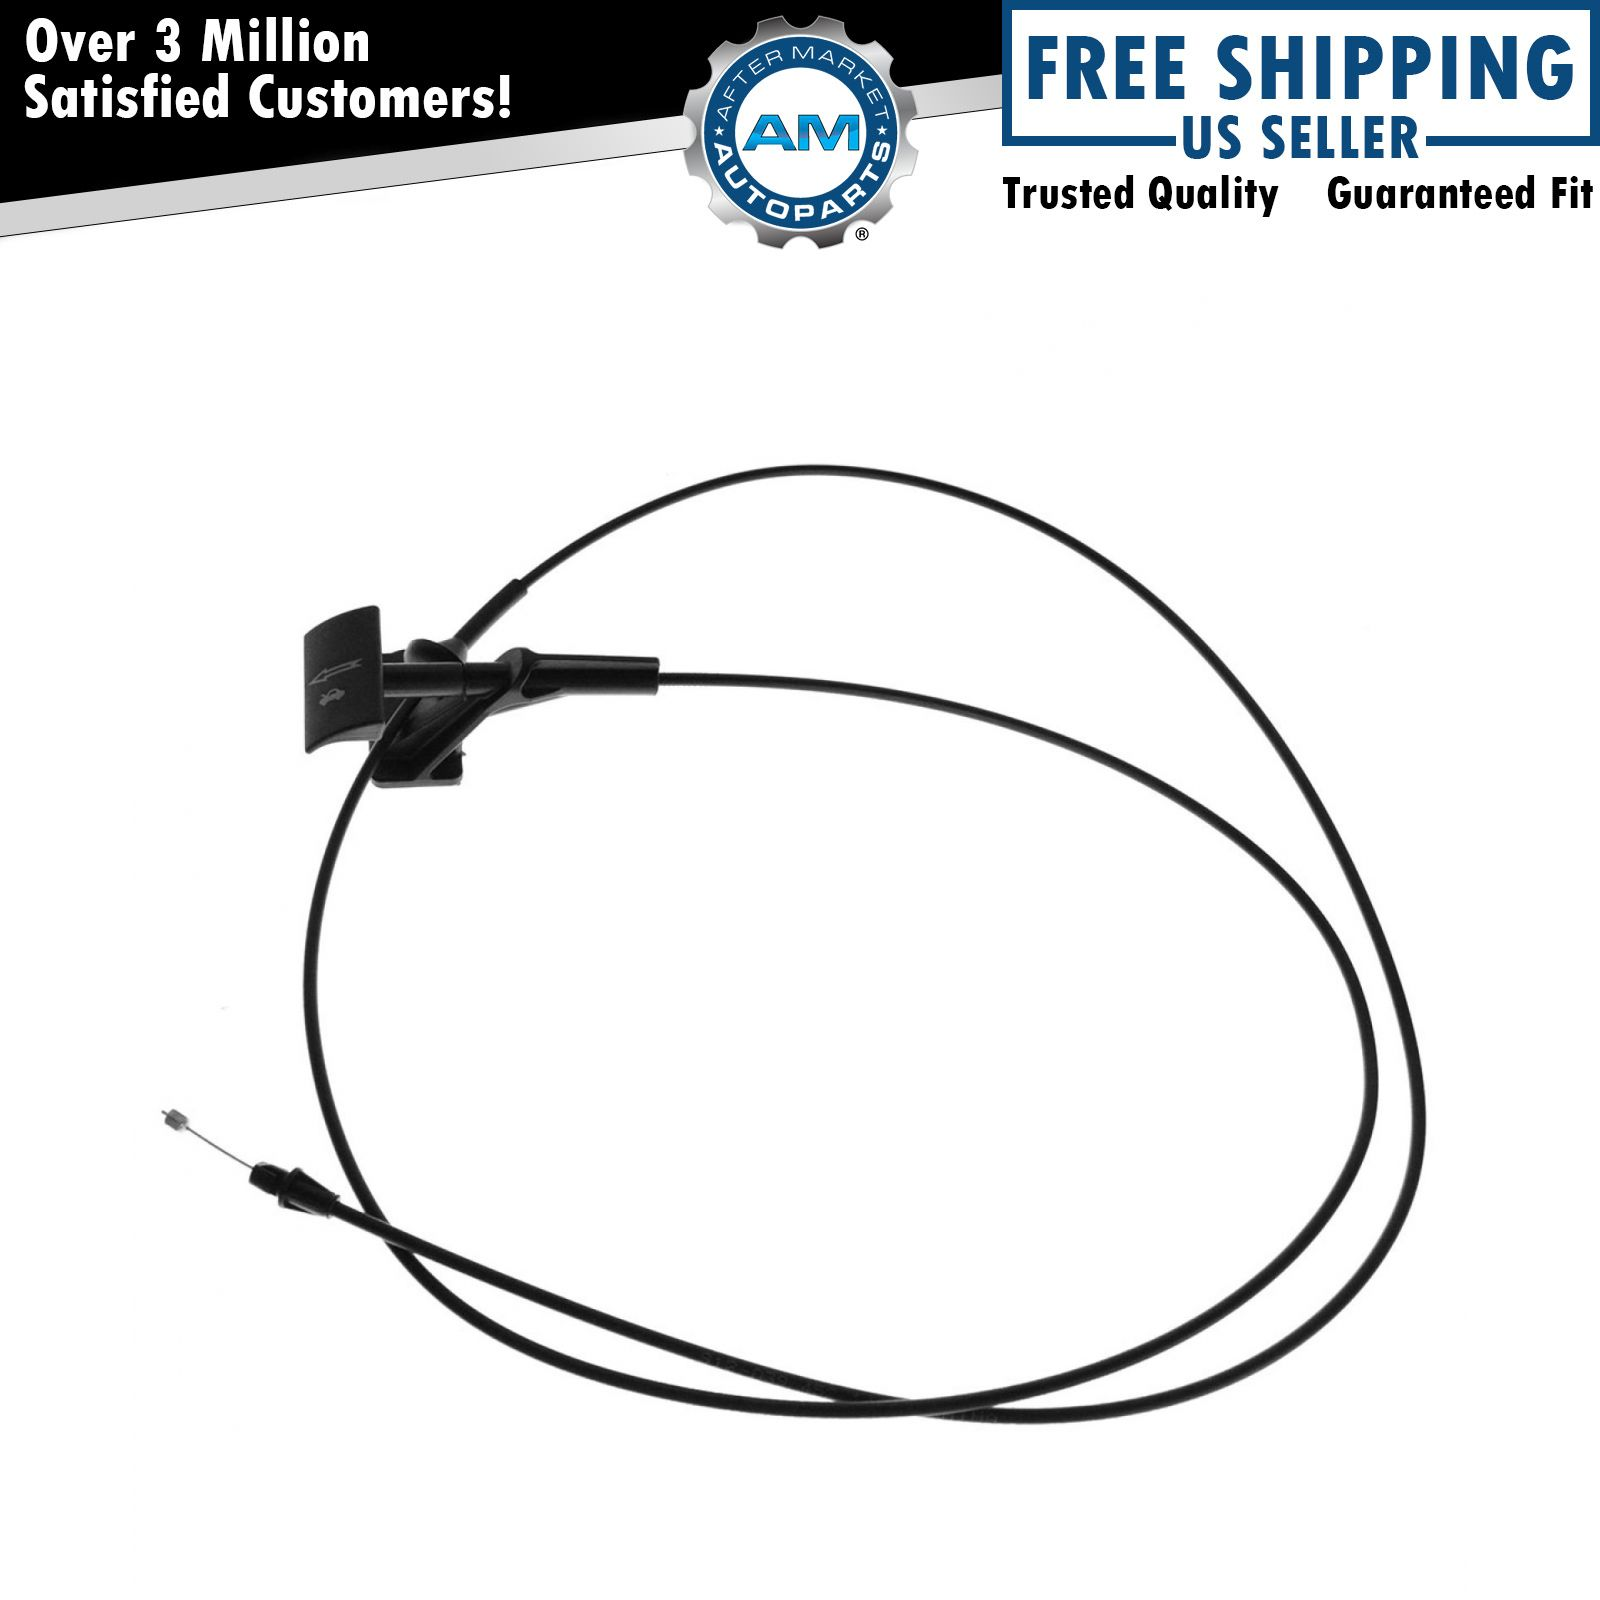 hood pop release cable with handle for ford f150 lincoln mark lt pickup truck